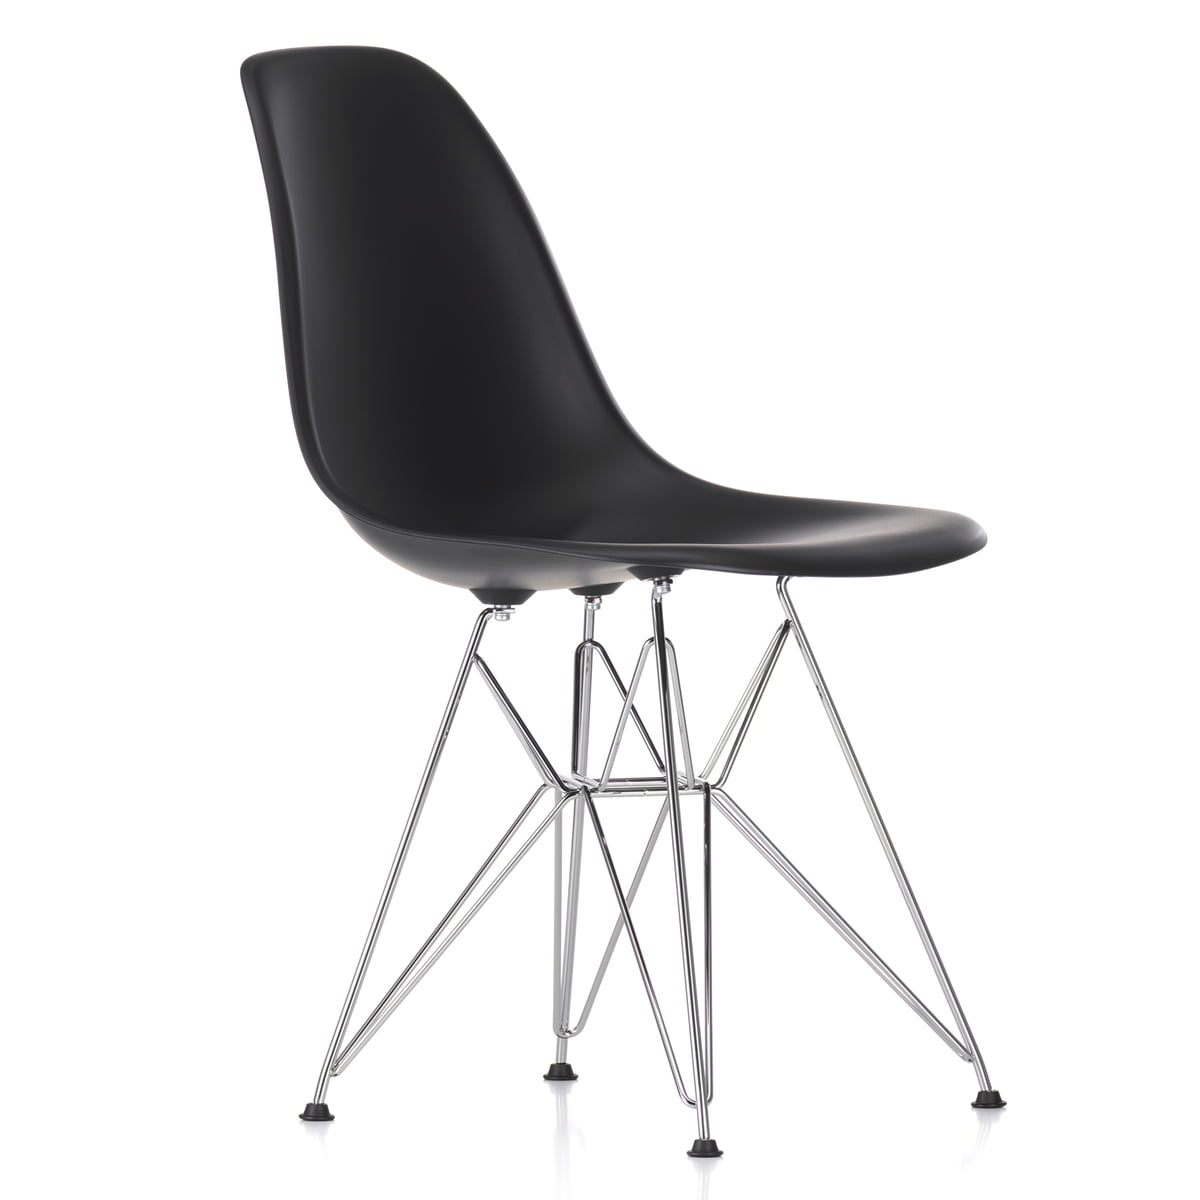 Vitra DSR Eames Plastic Side Chair bei connox.at